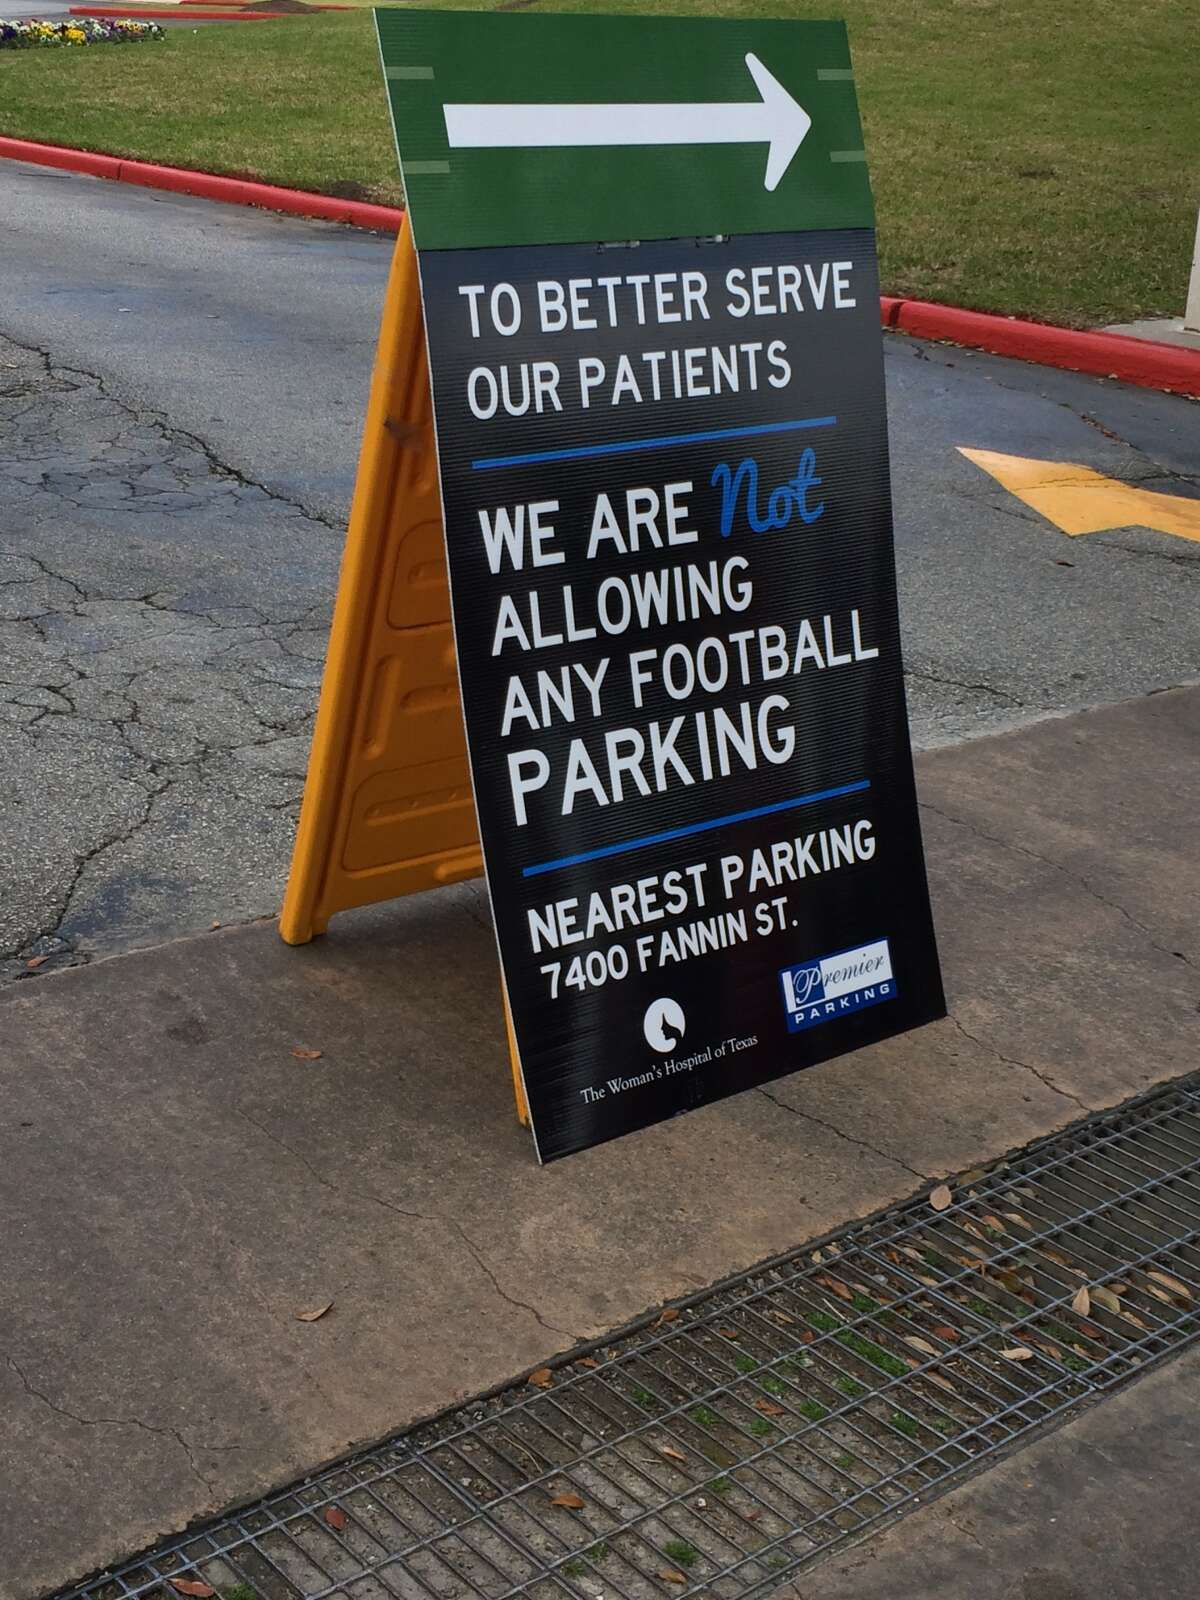 The Woman's Hospital tries to dissuade potential parkers near NRG Stadium on Super Bowl Sunday, Feb. 5, 2017. (Ileana Najarro/Houston Chronicle)